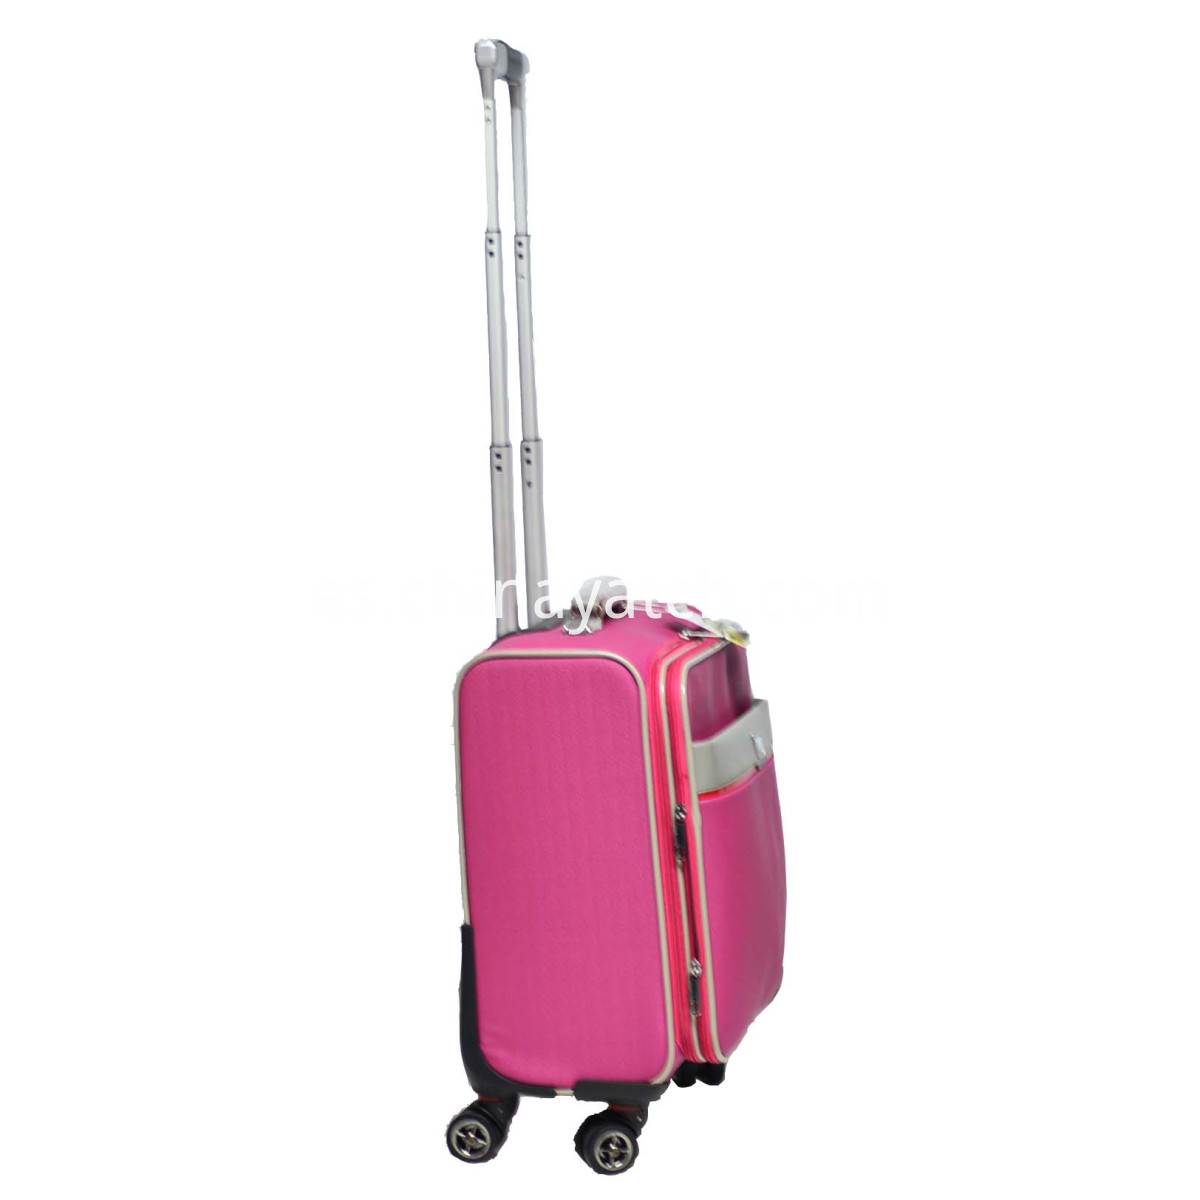 Carry on Laptop Trolley Case